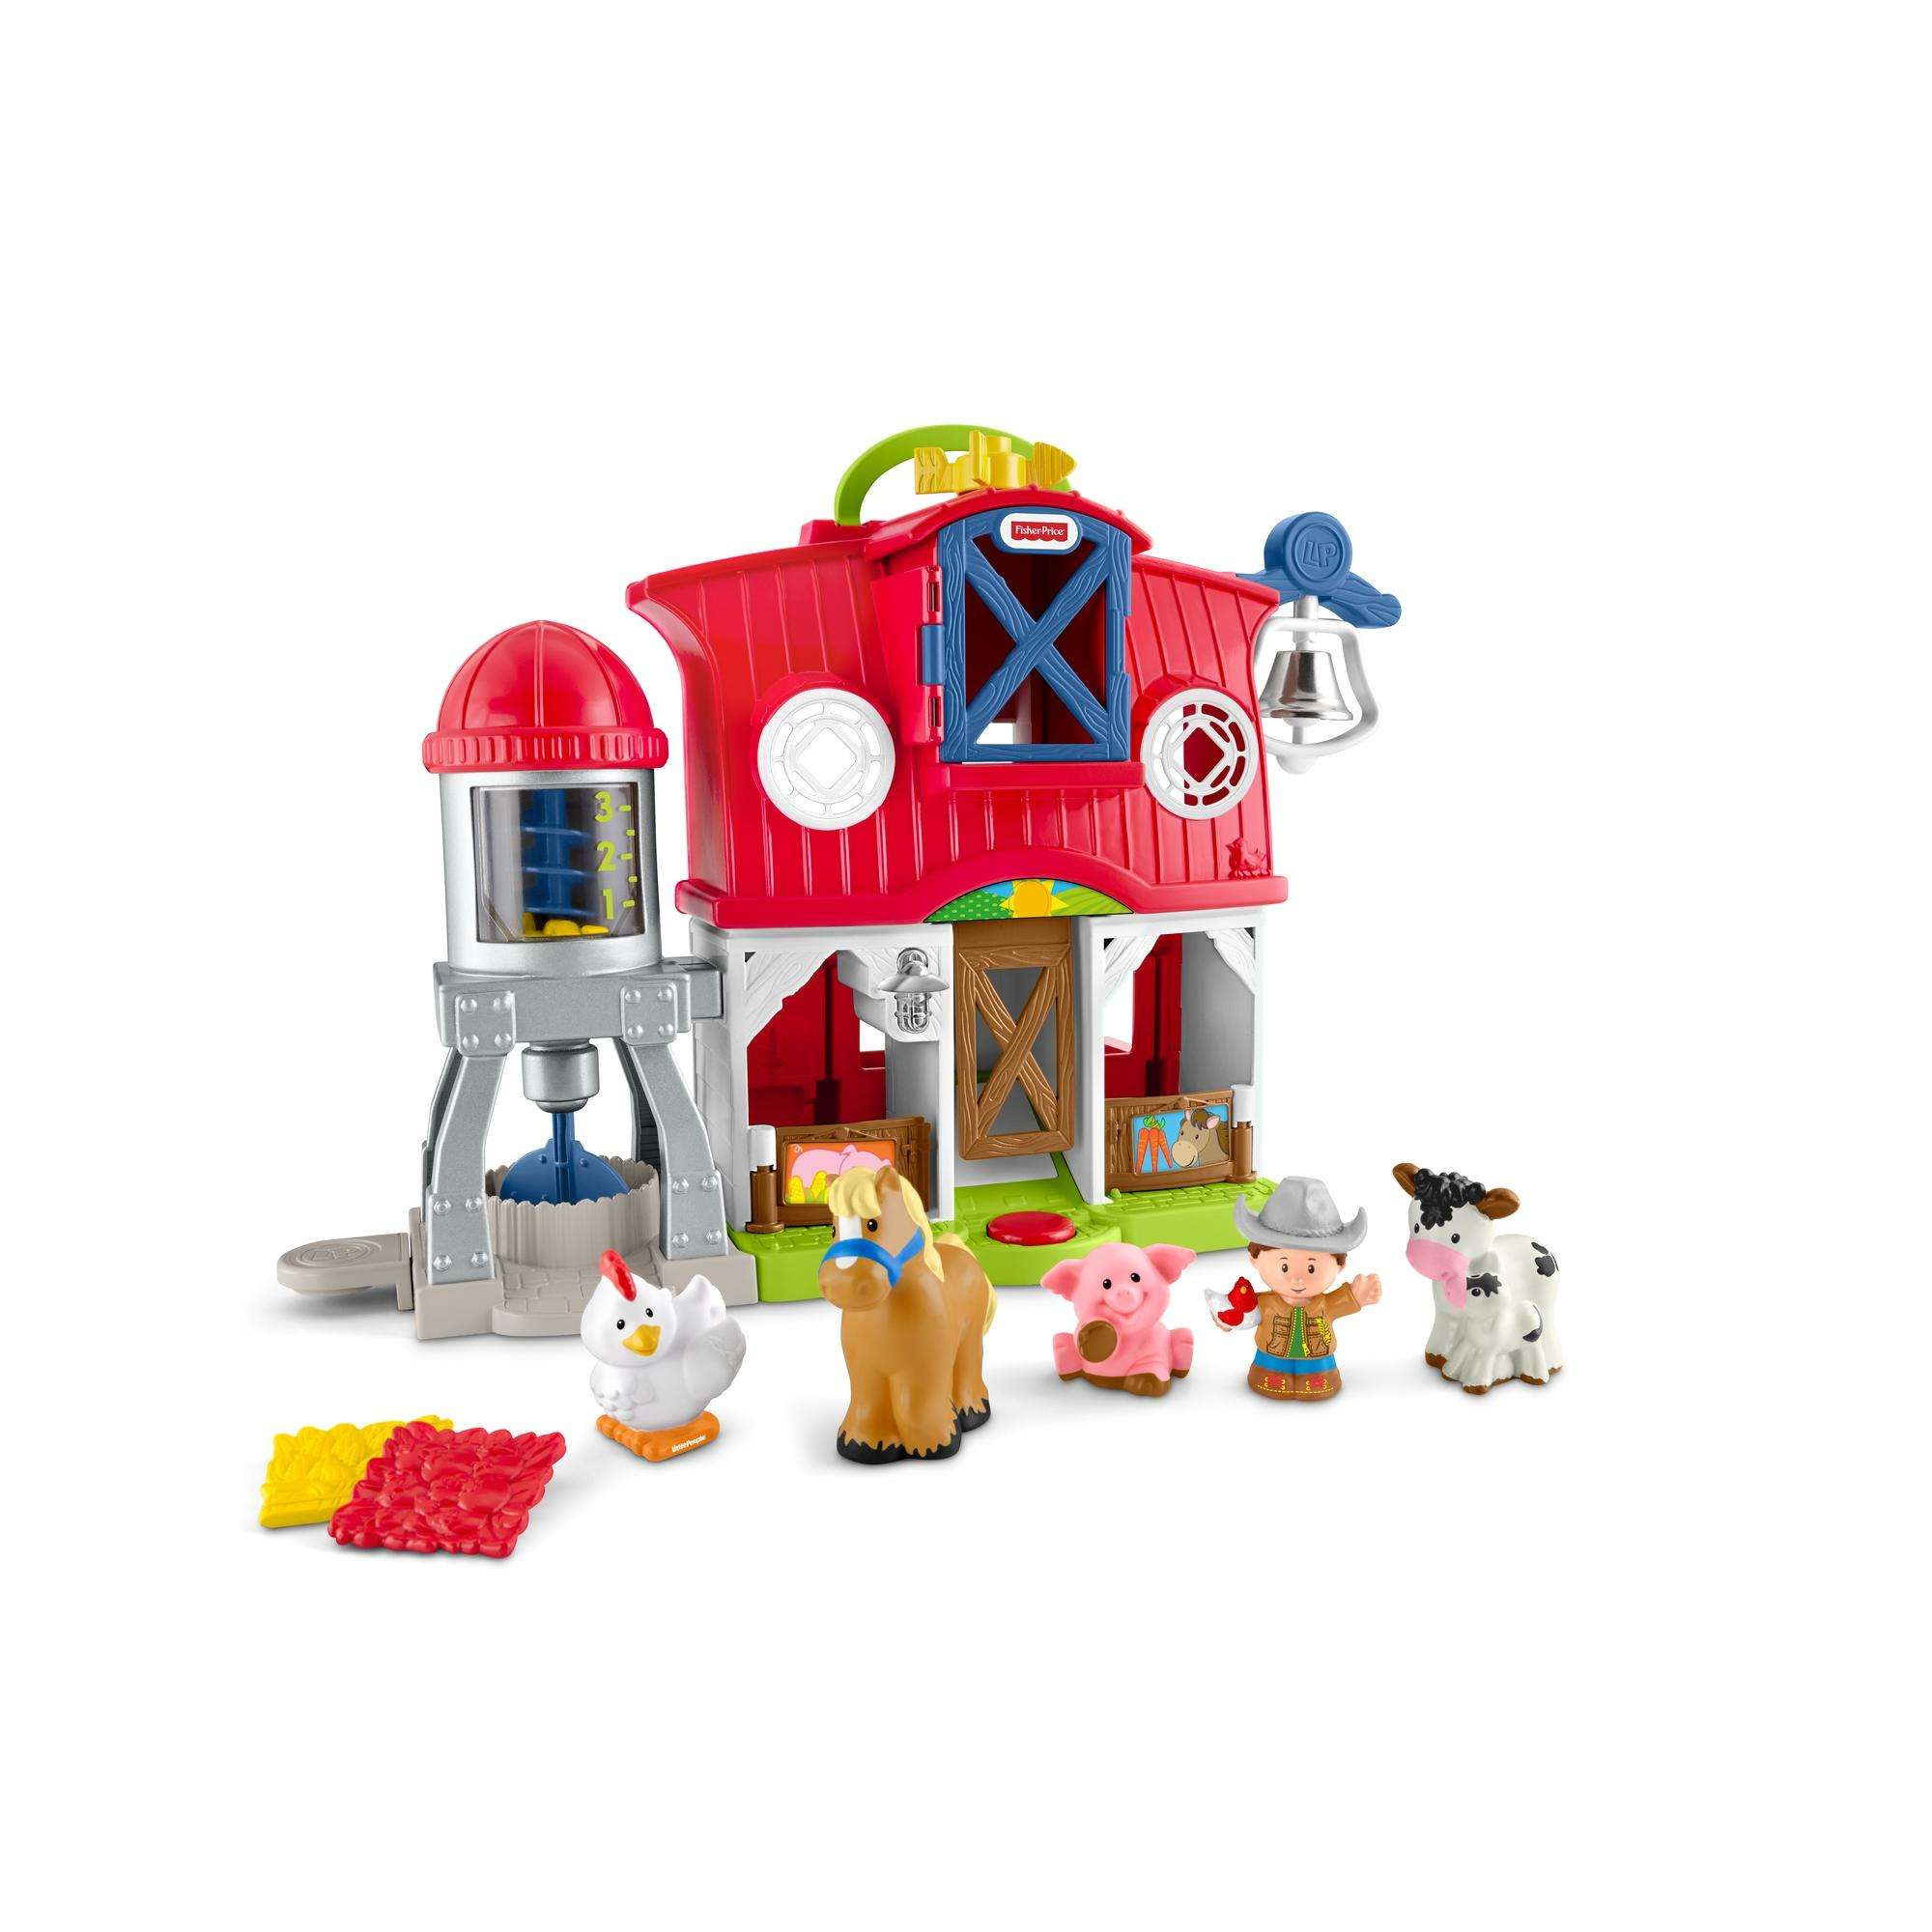 Little People Caring For Animals Farm Playset with Farmer Jed Figure by Fisher-Price